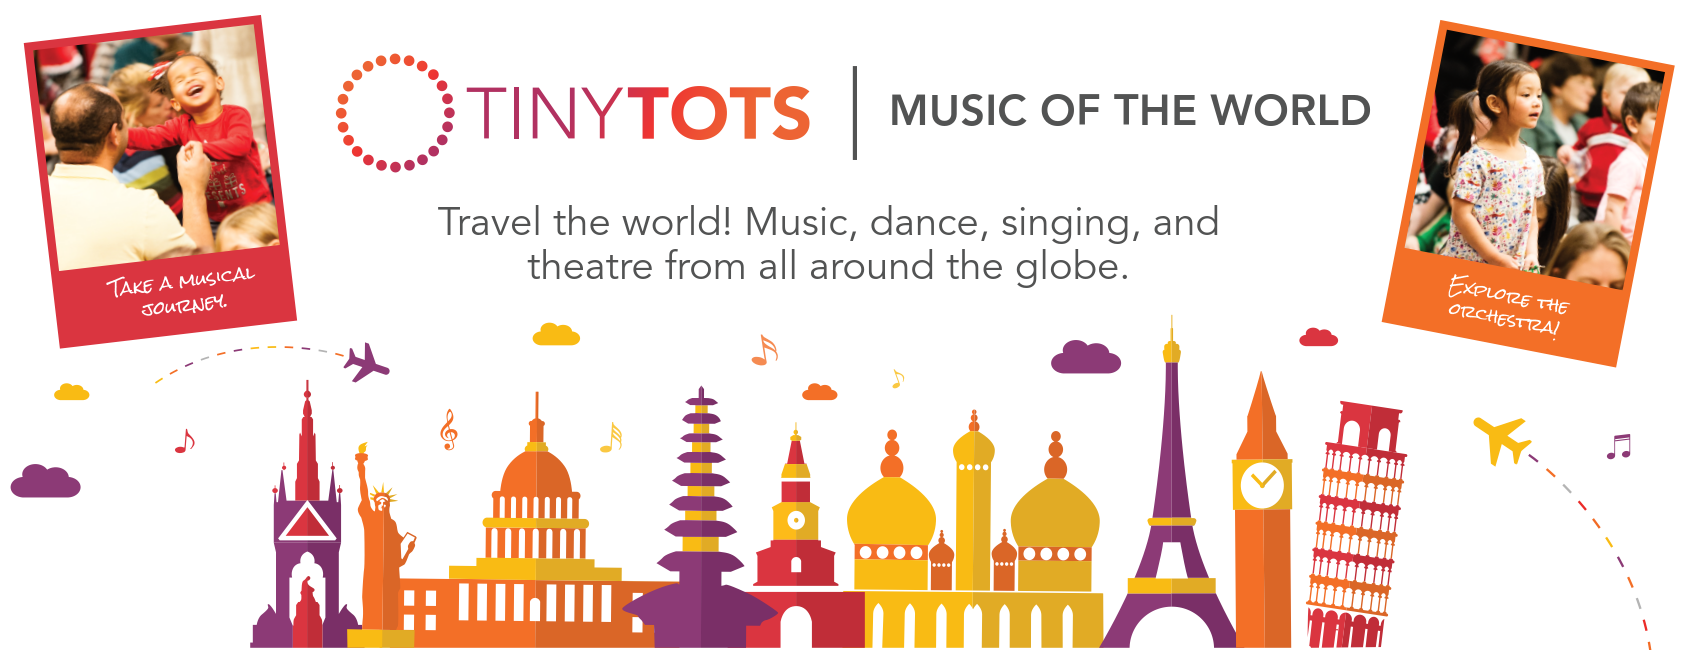 Travel the Musical World this February at Tiny Tots: Music of the World